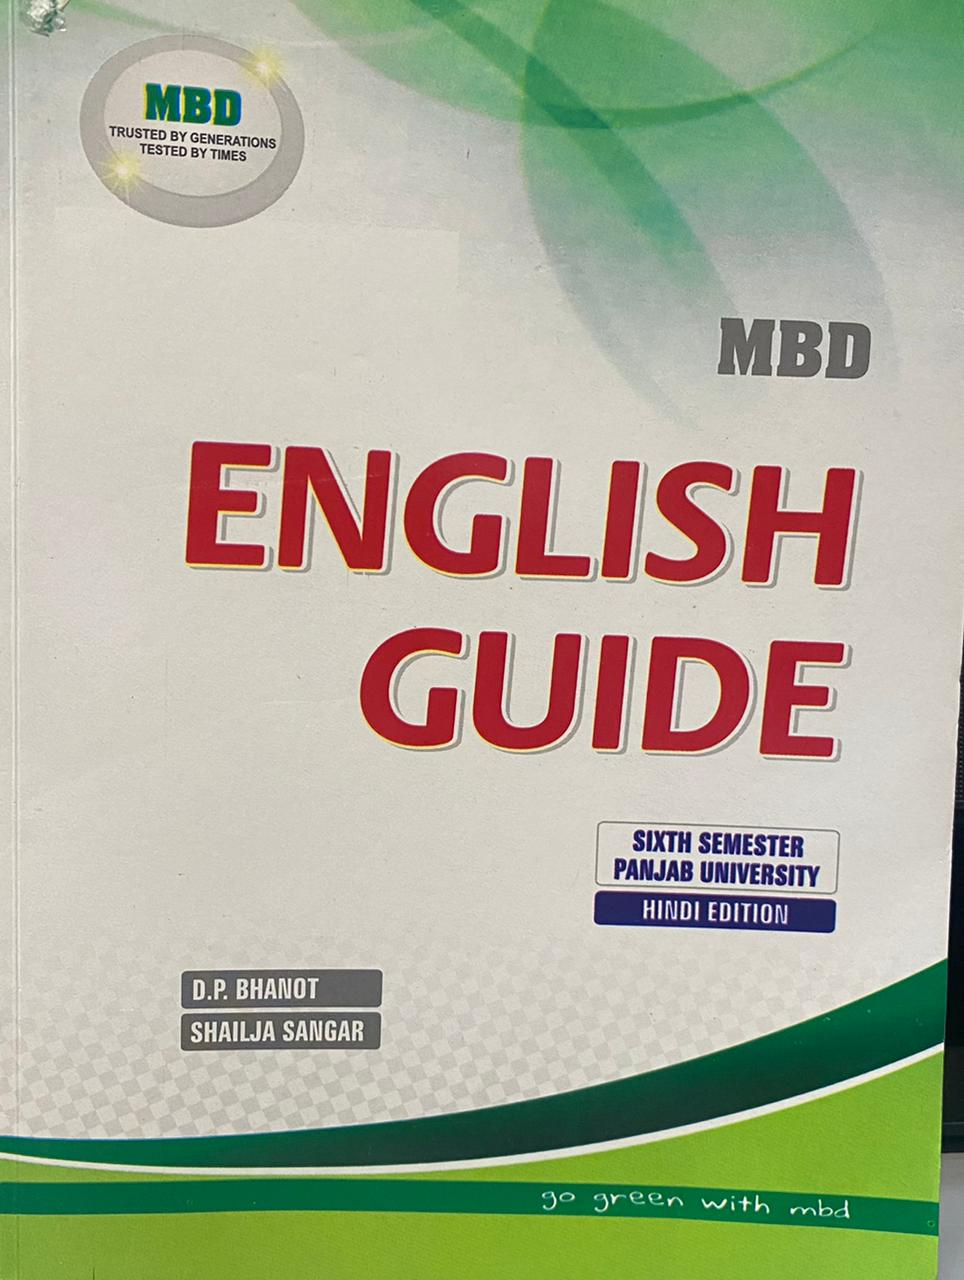 MBD English Guide in Hindi Edition for B.A. 6th Sem by D.P. Bhanot (P.U.) 2021